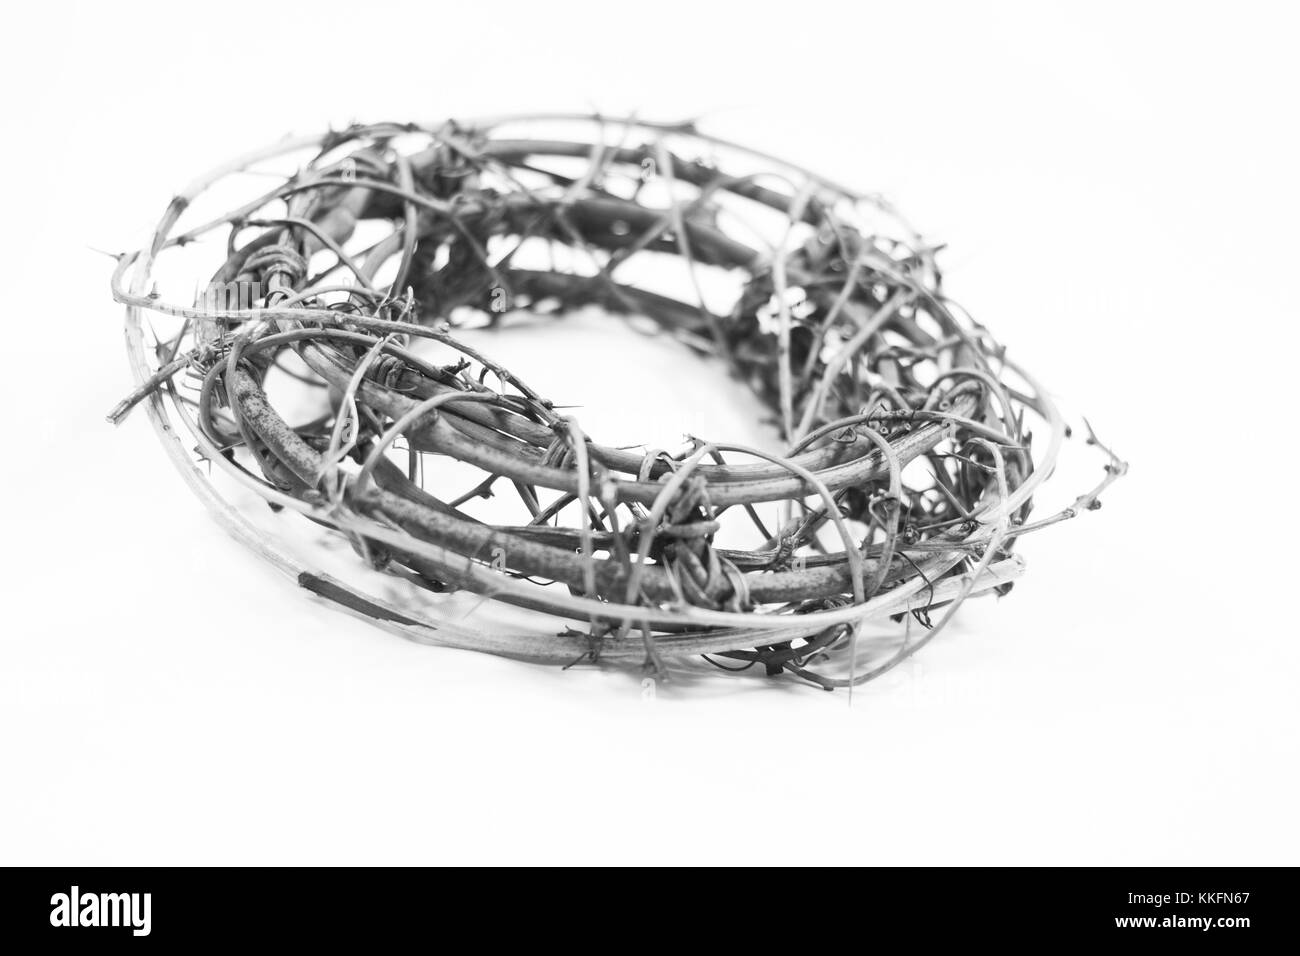 Crown of Thorns, as worn by Jesus Christ in the Easter Passion story during his Crucifixion, on a white background - Stock Image